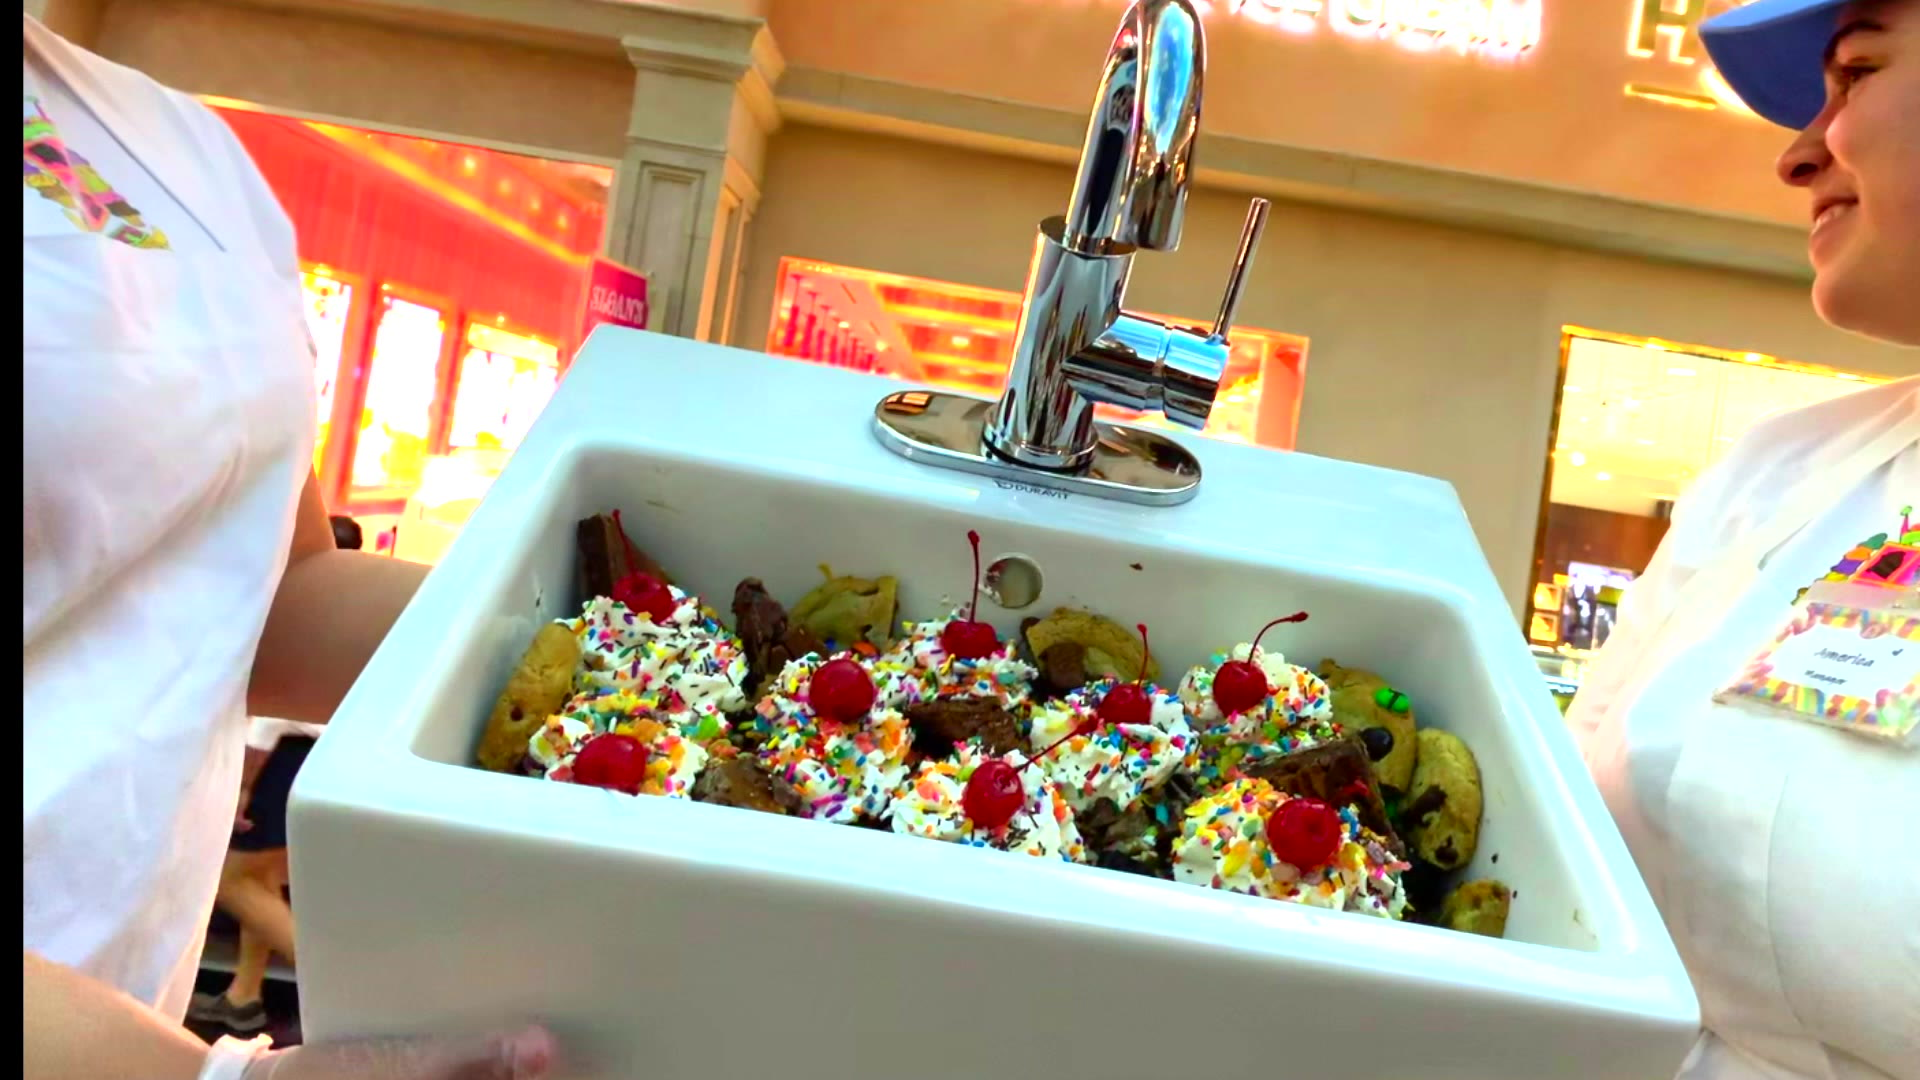 Las Vegas Ice Cream Shop Offers Everything In The Kitchen Sink Video Las Vegas Review Journal